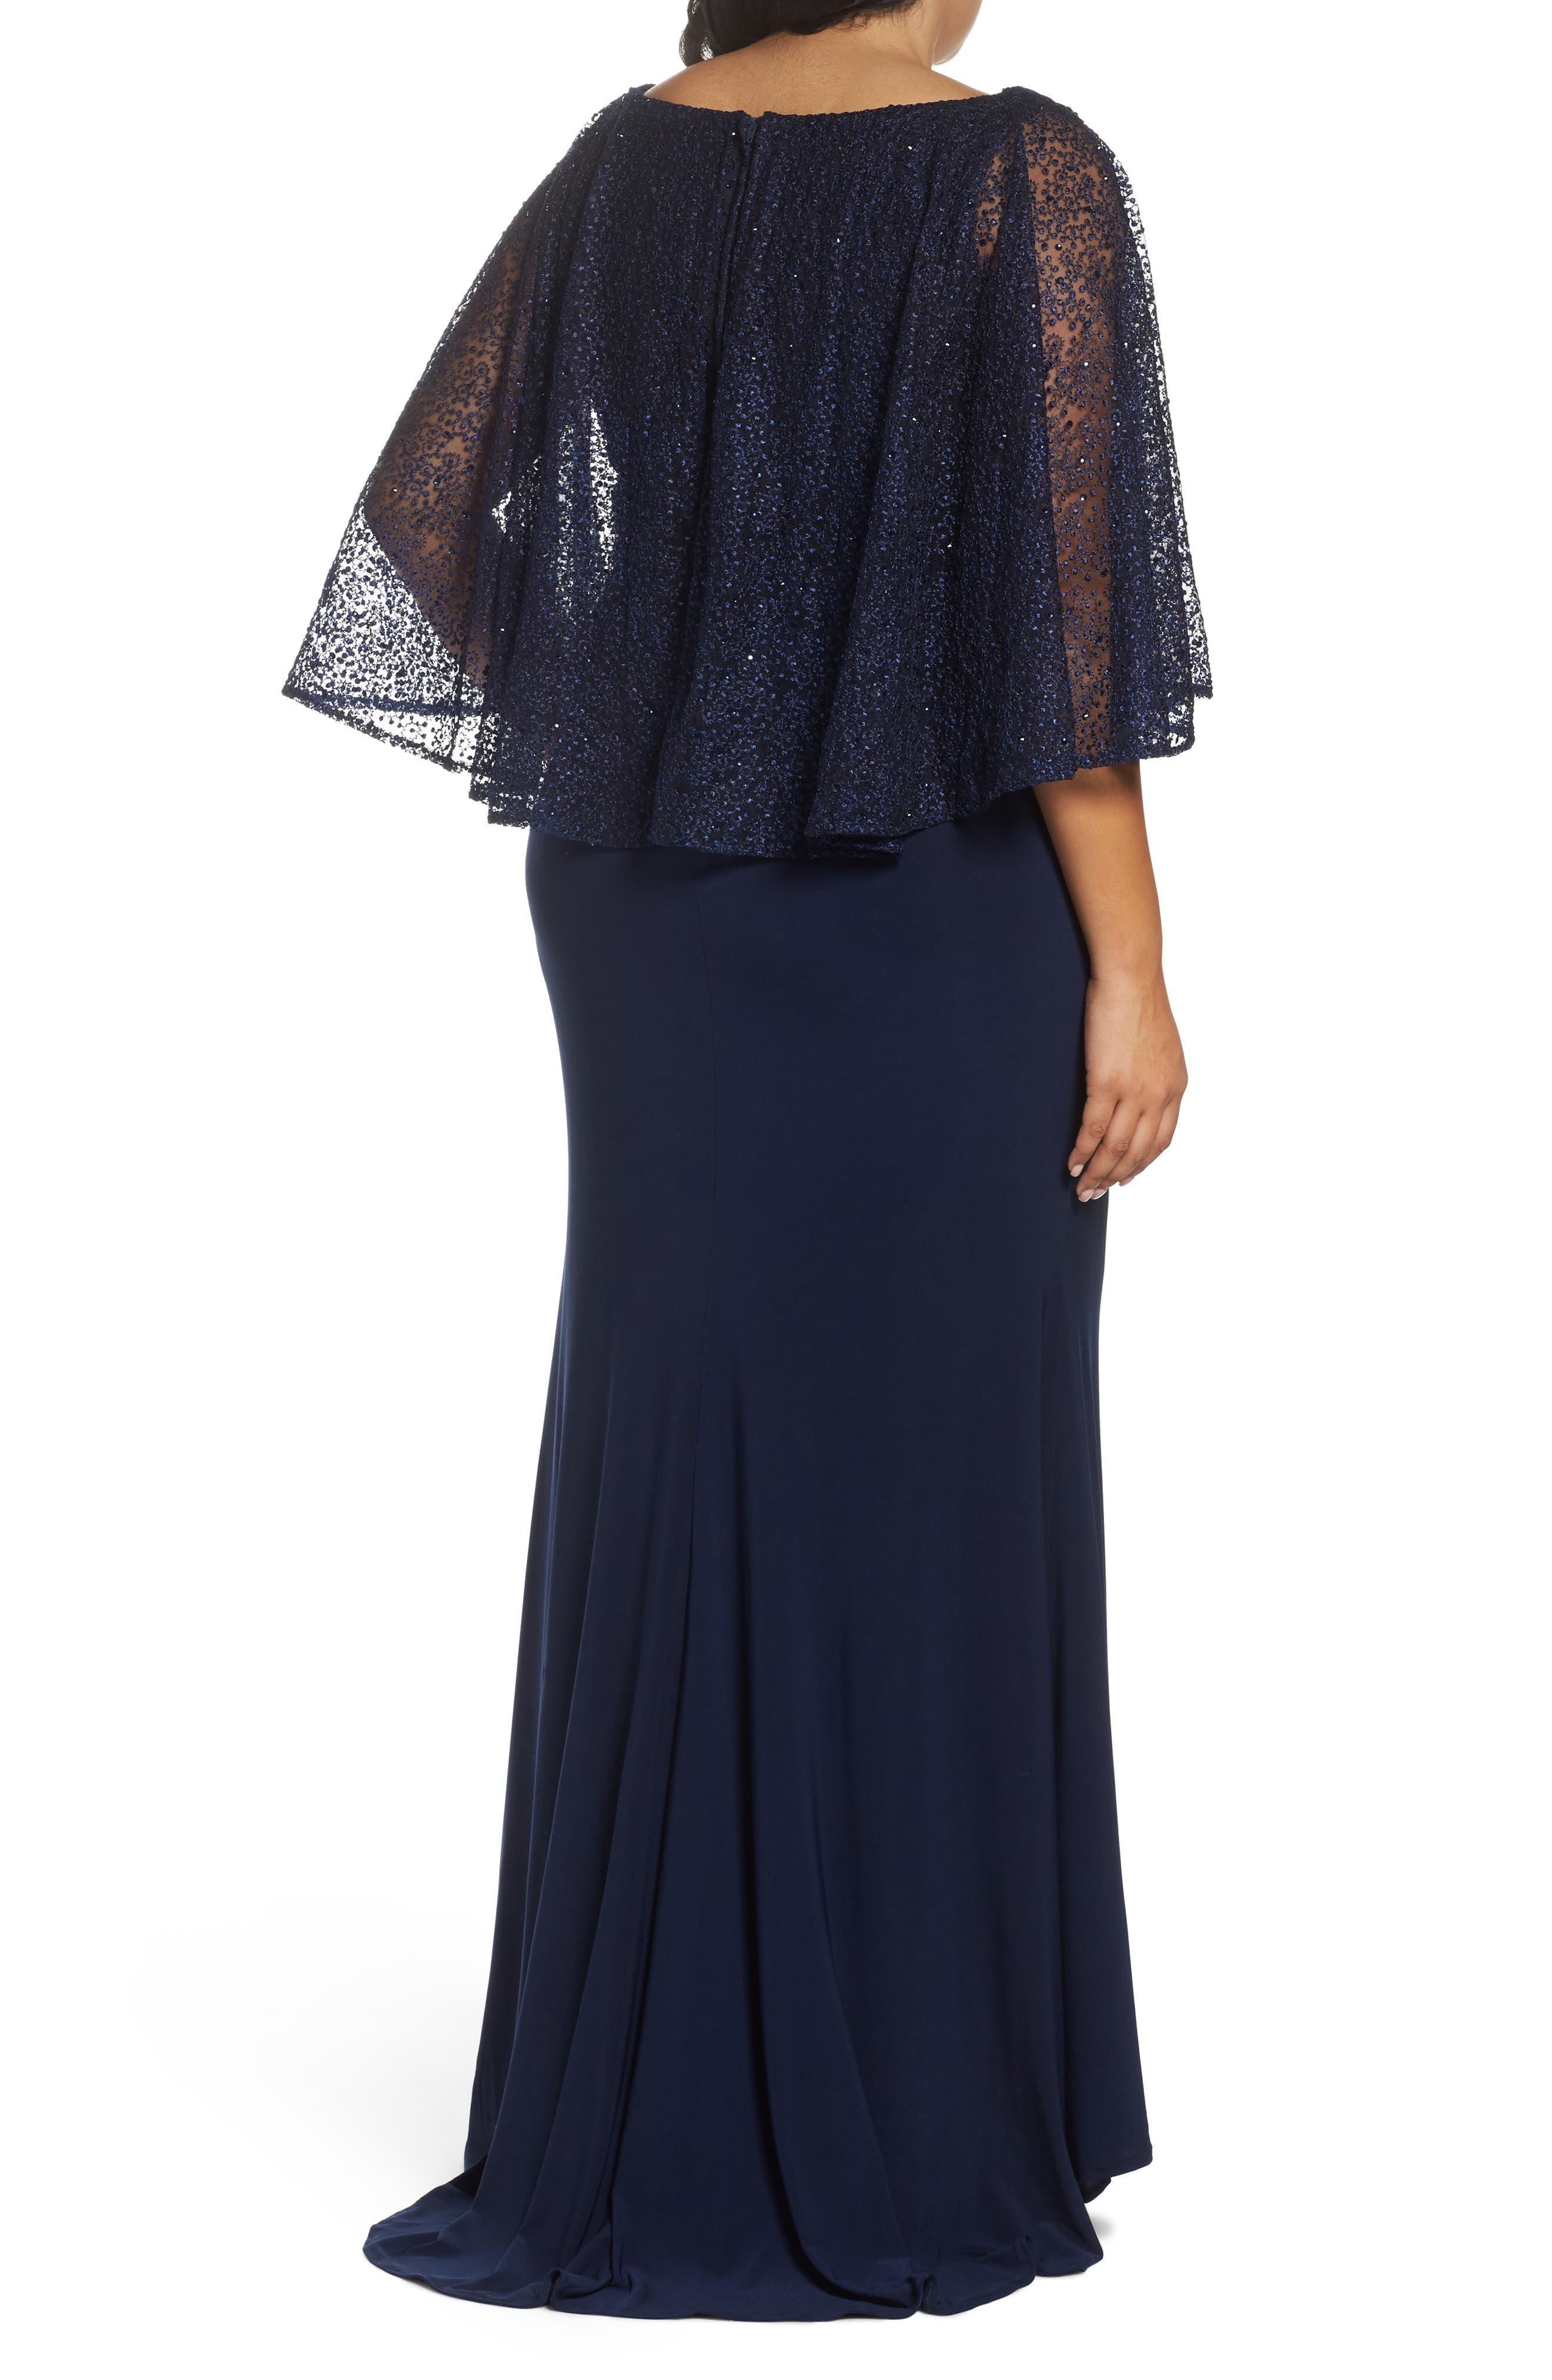 MAC DUGGAL, Lace Capelet Column Gown, Alternate thumbnail 2, color, MIDNIGHT